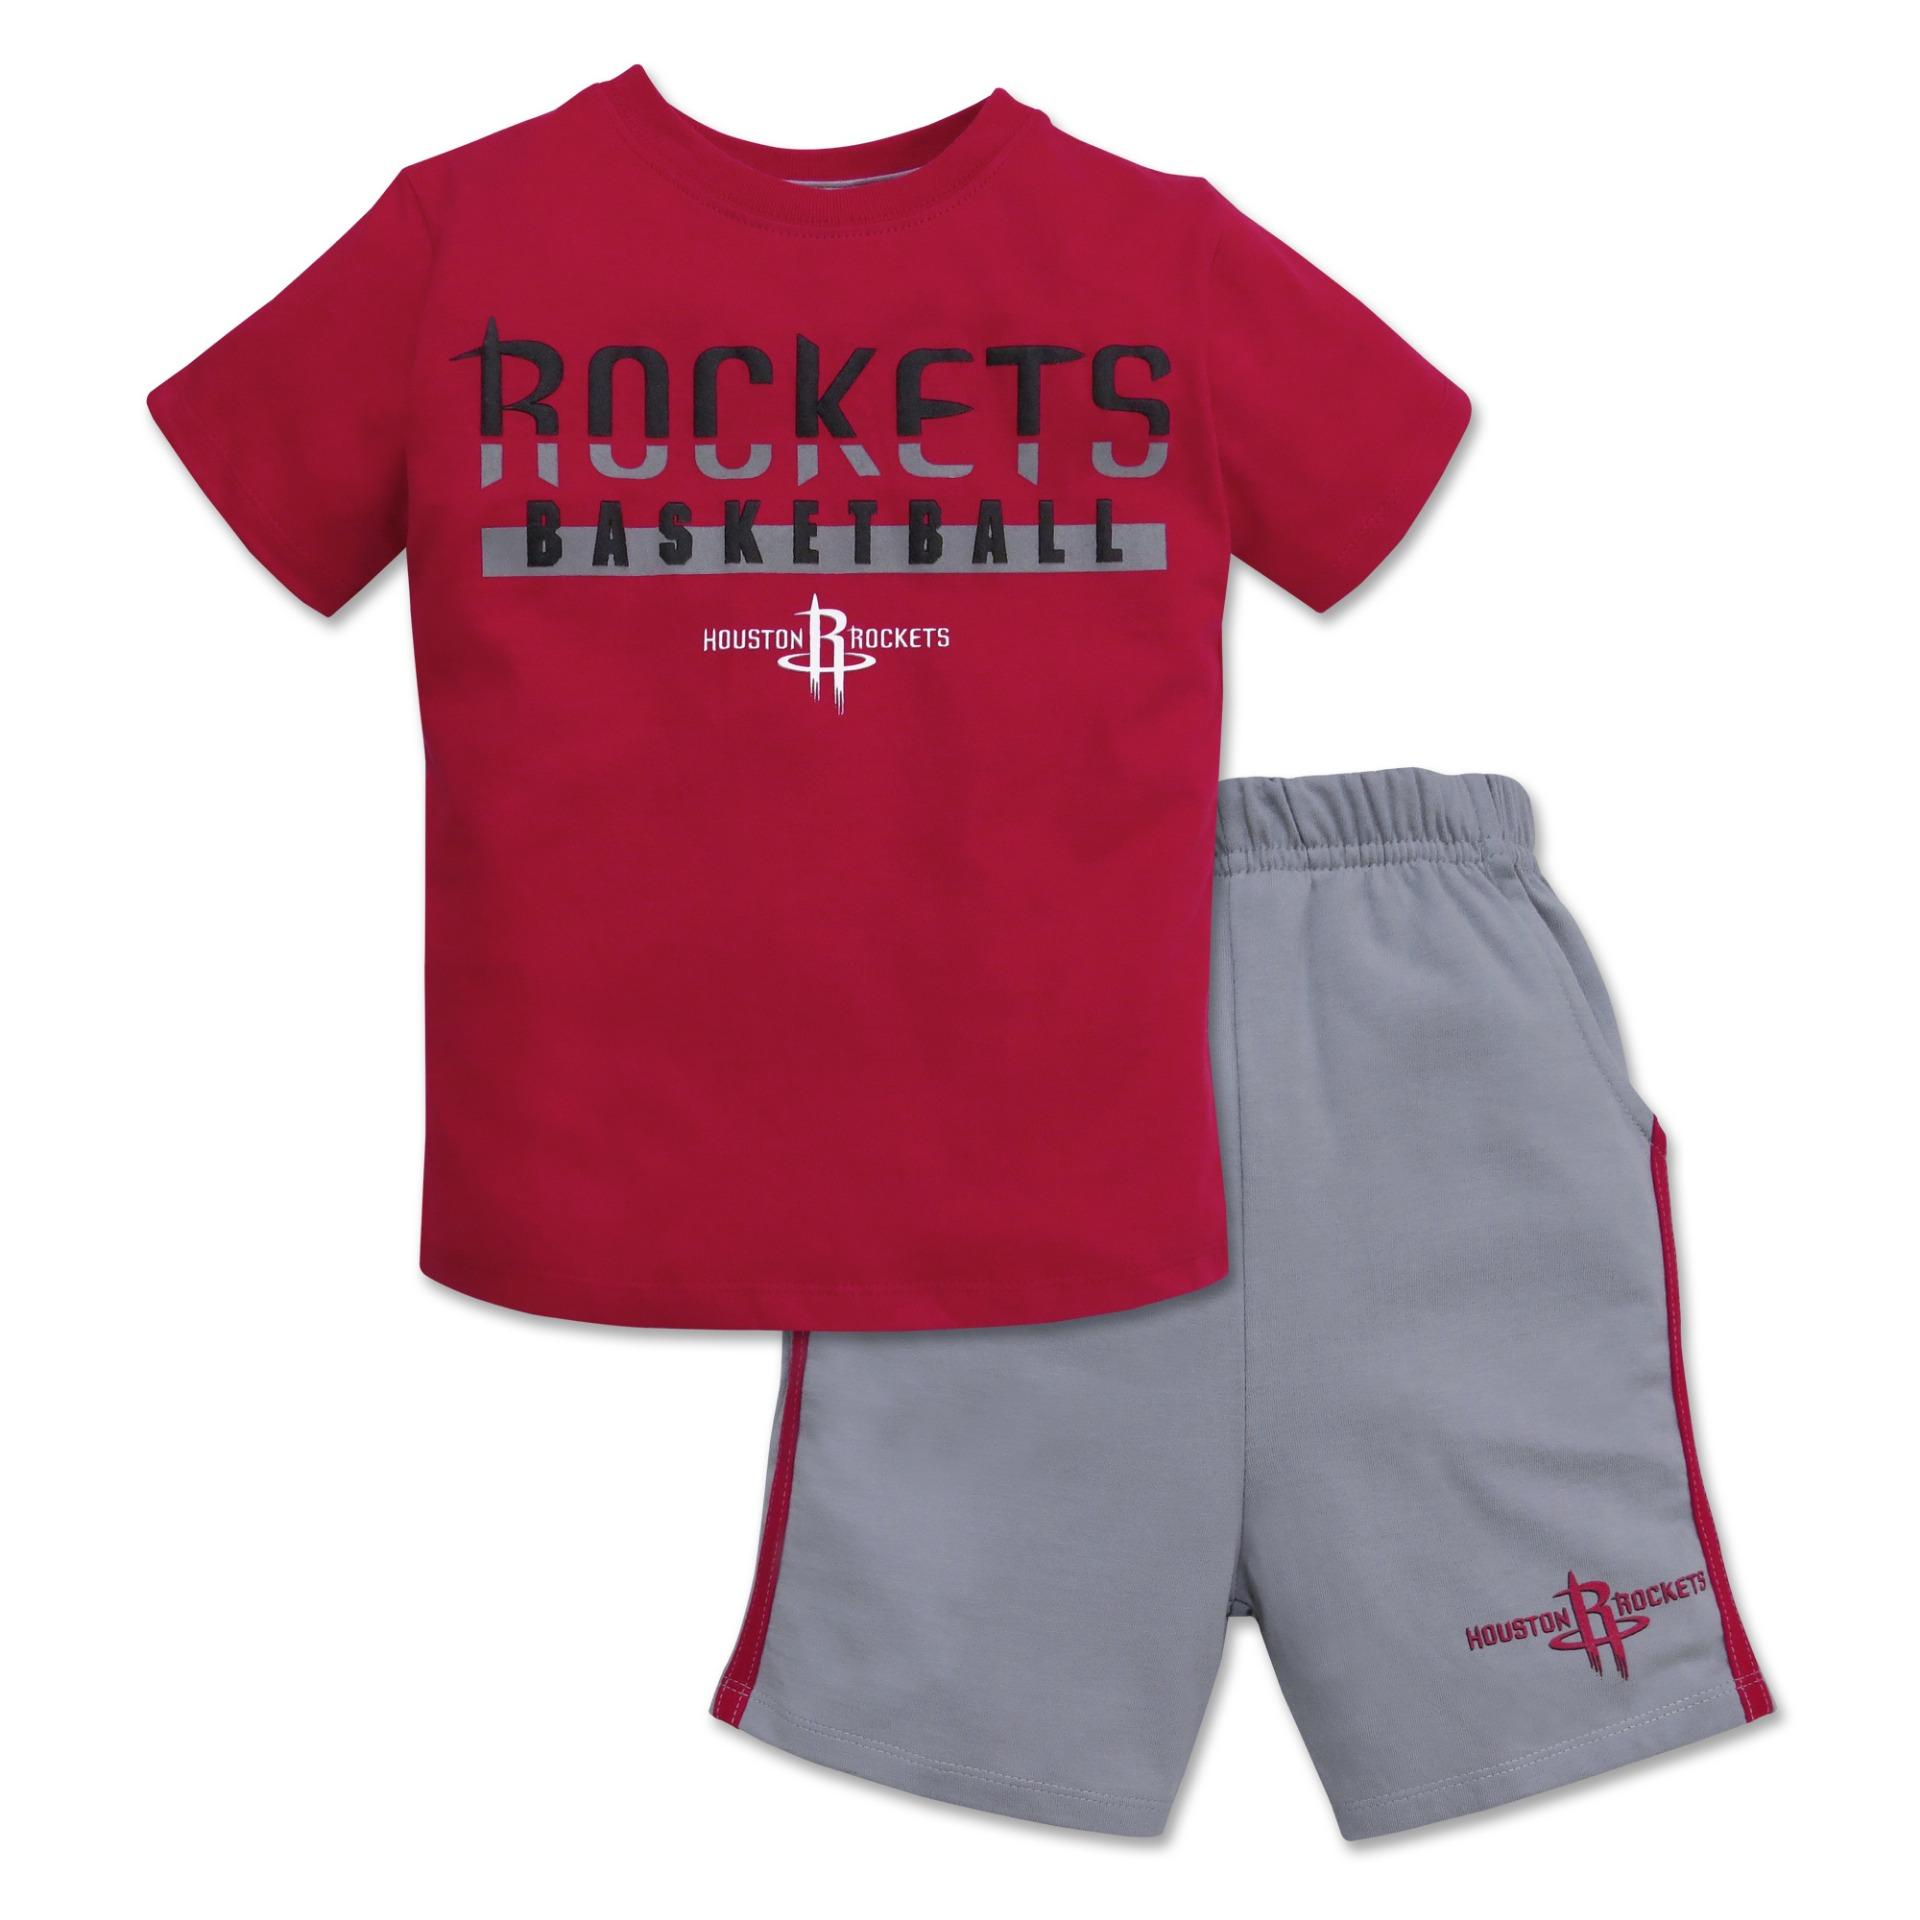 Boys Clothing for sale - Baby Clothing for Boys online brands ... 33be9d818